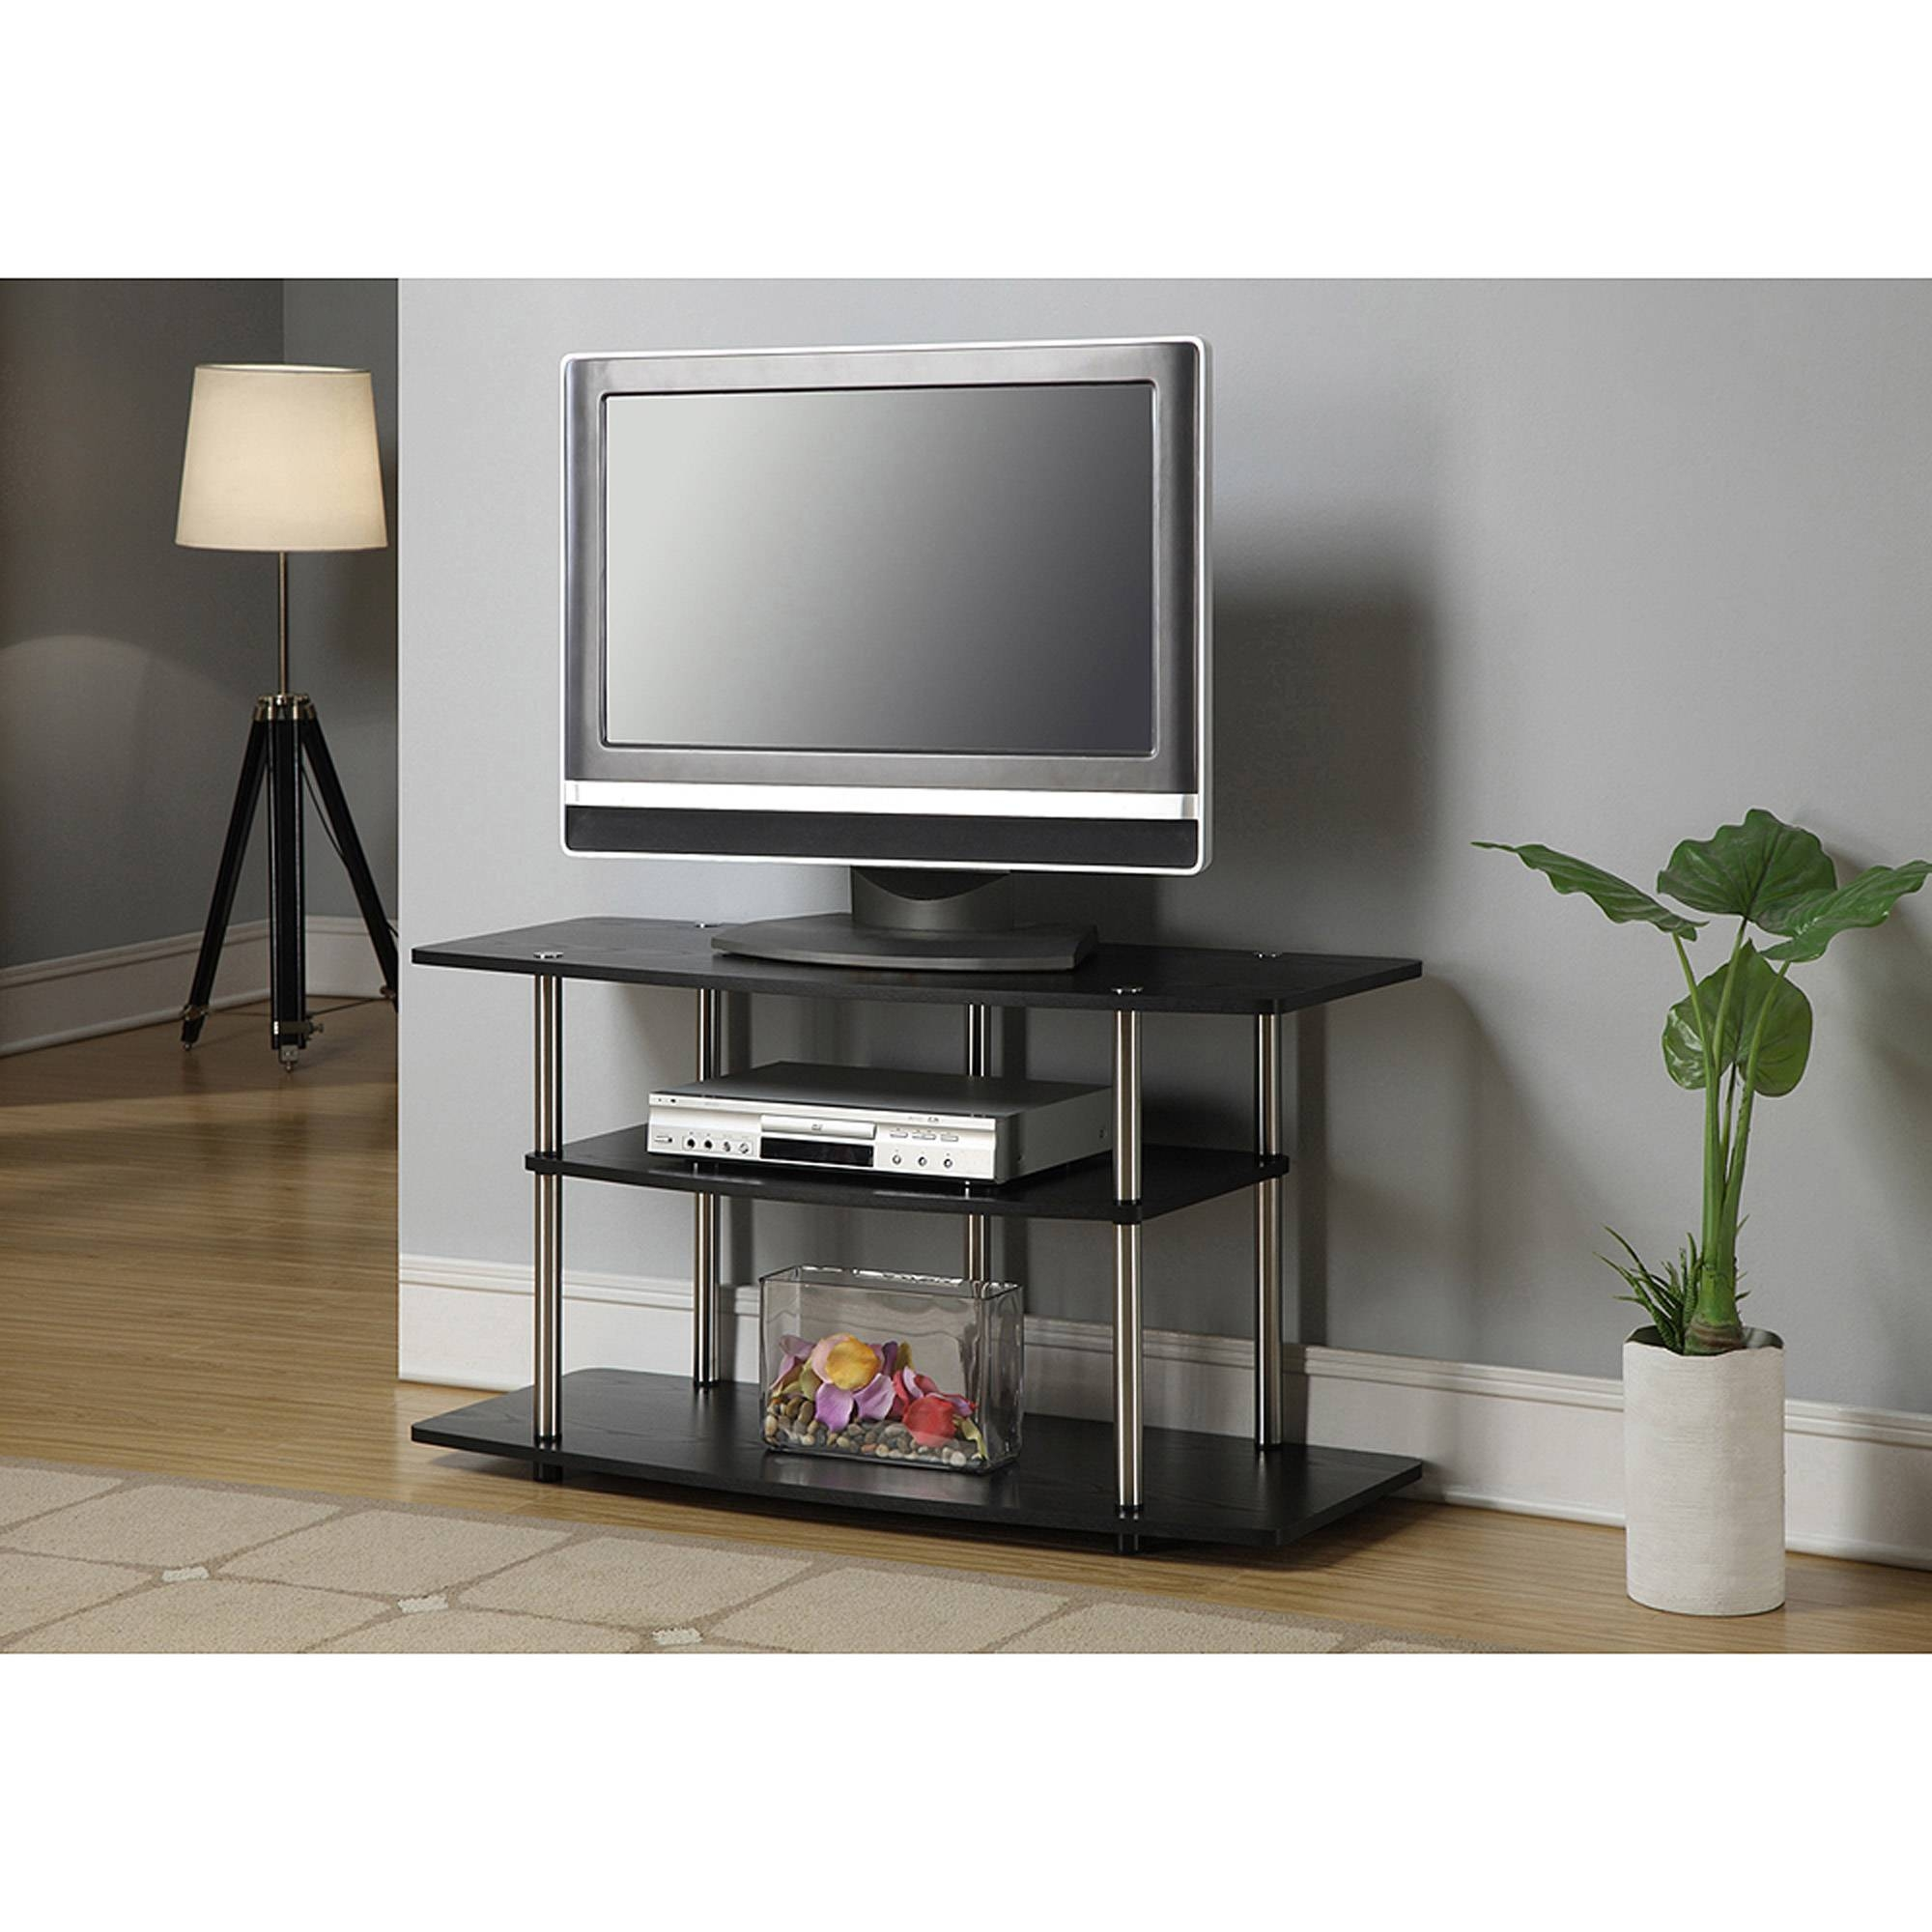 "Walker Edison Black Tv Stand For Tvs Up To 48"" - Walmart throughout Wide Screen Tv Stands (Image 15 of 15)"